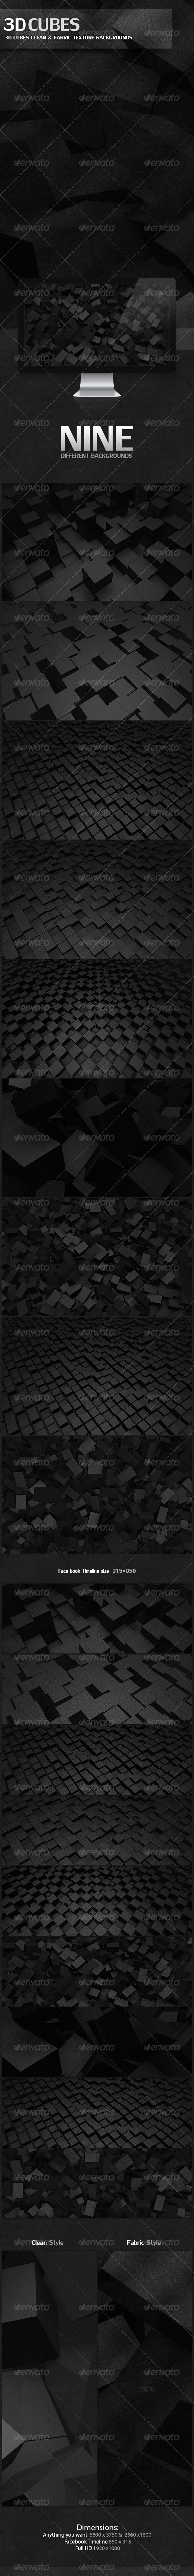 3d-Cubes-Clean-Fabric-Texture-Backgrounds-wallpaper-wp3401313